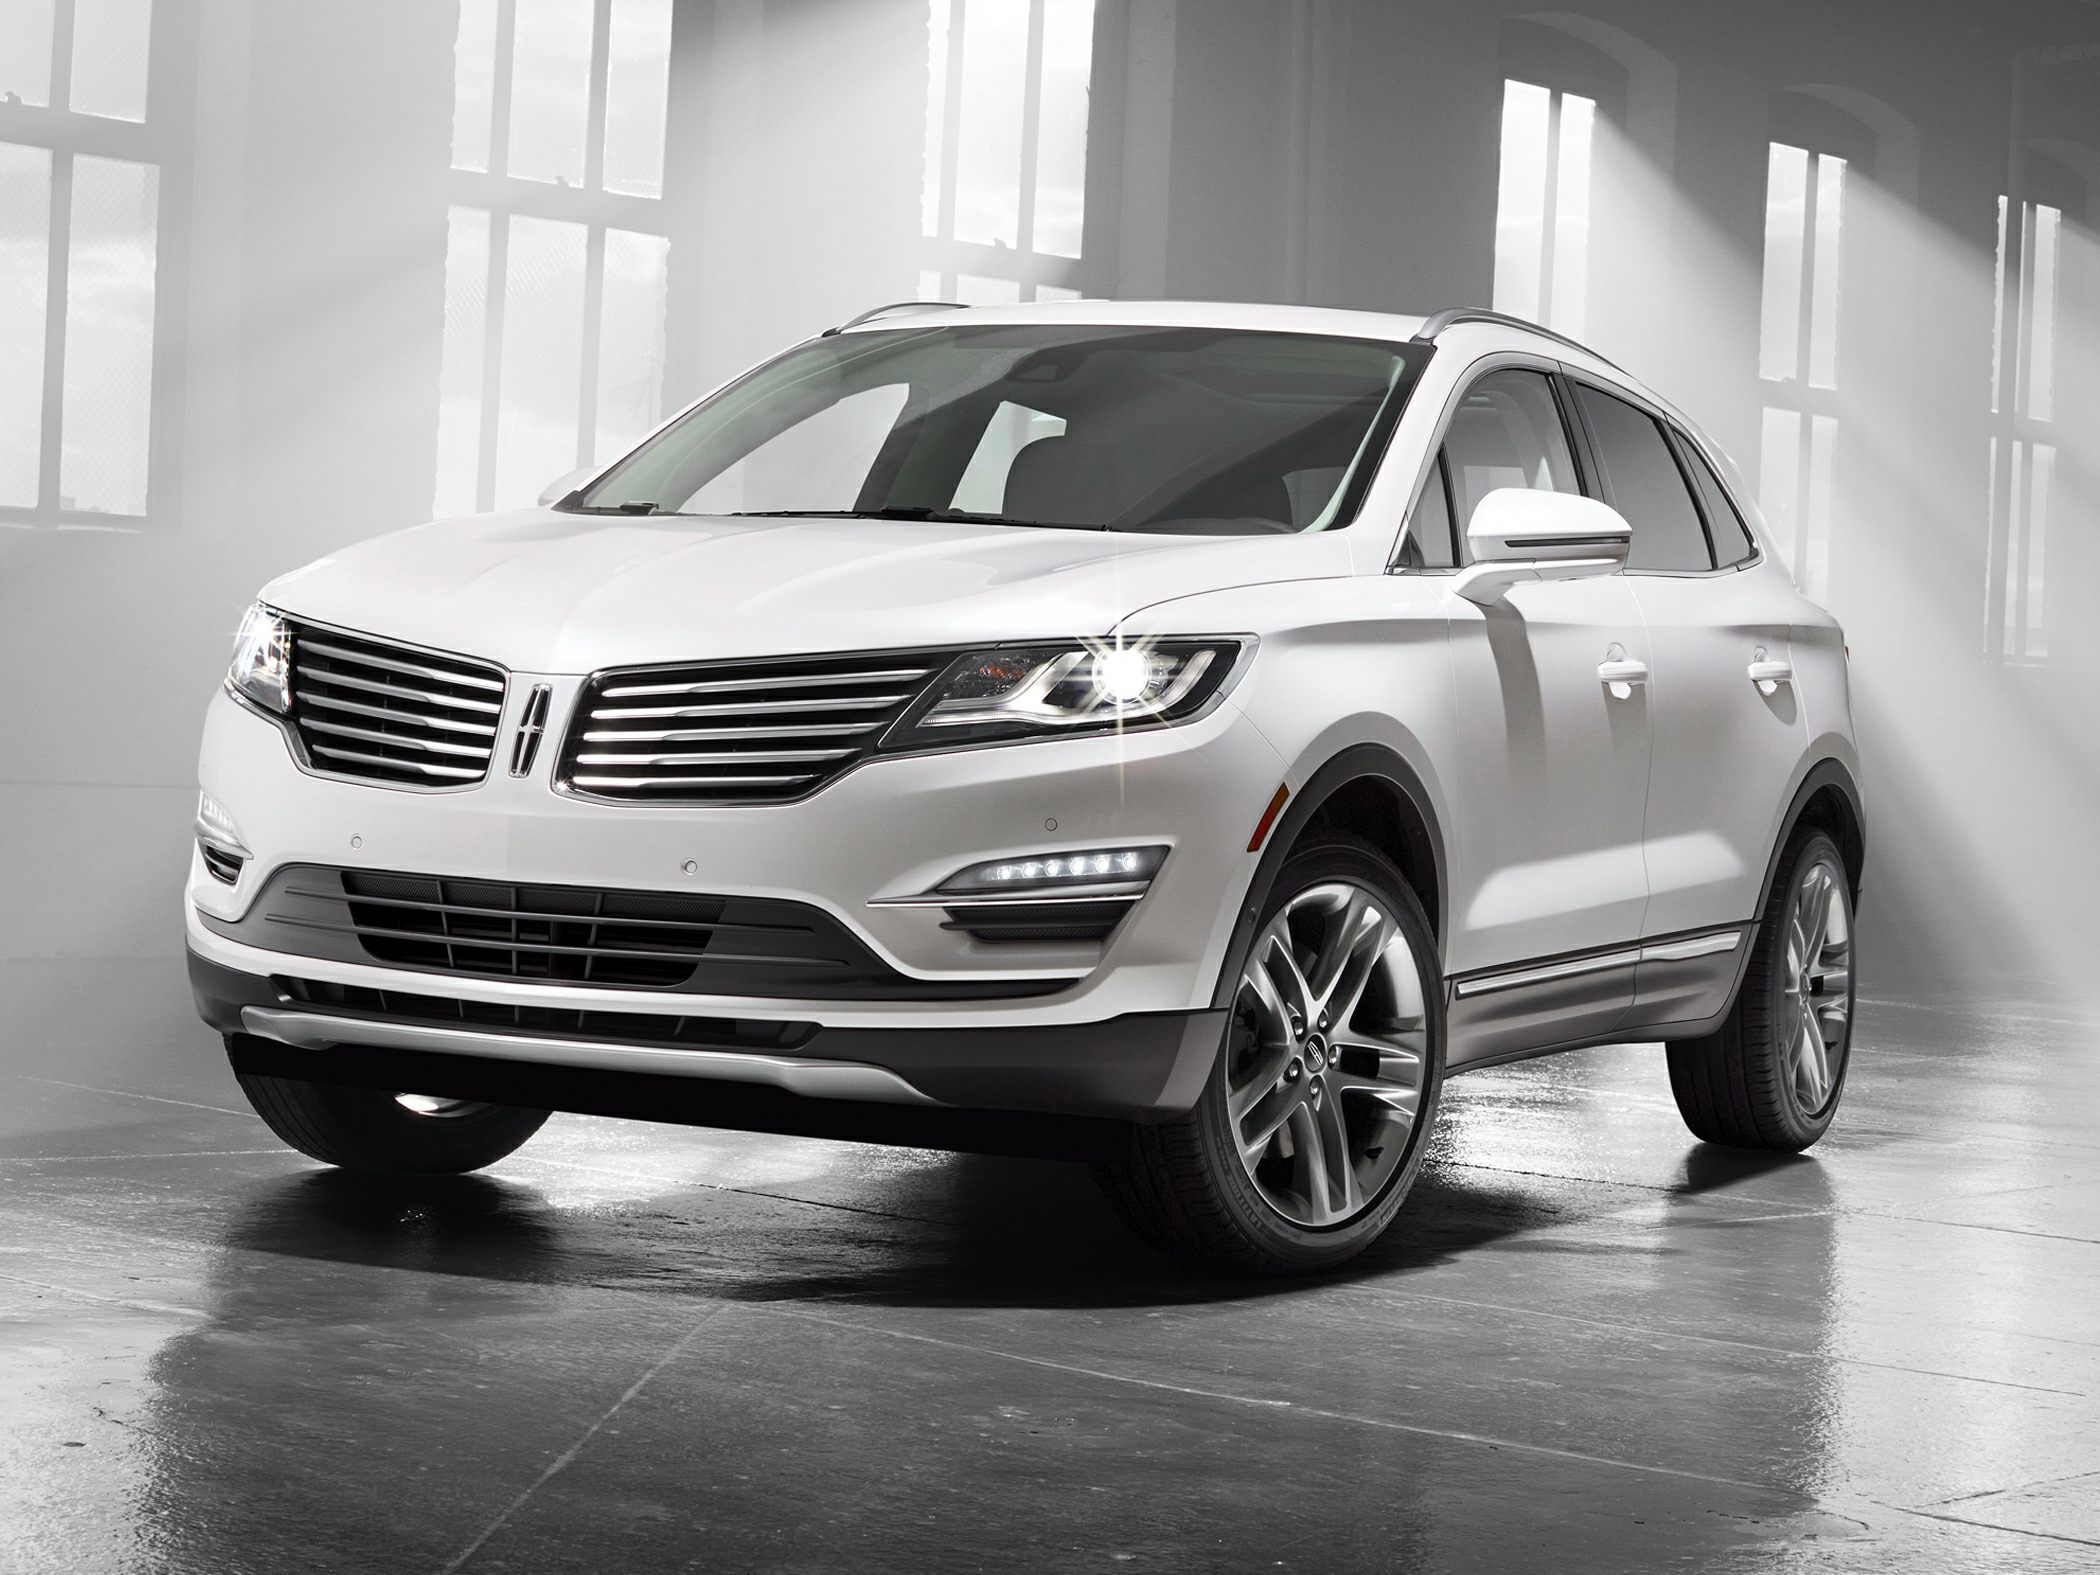 2015 Lincoln MKC Glam